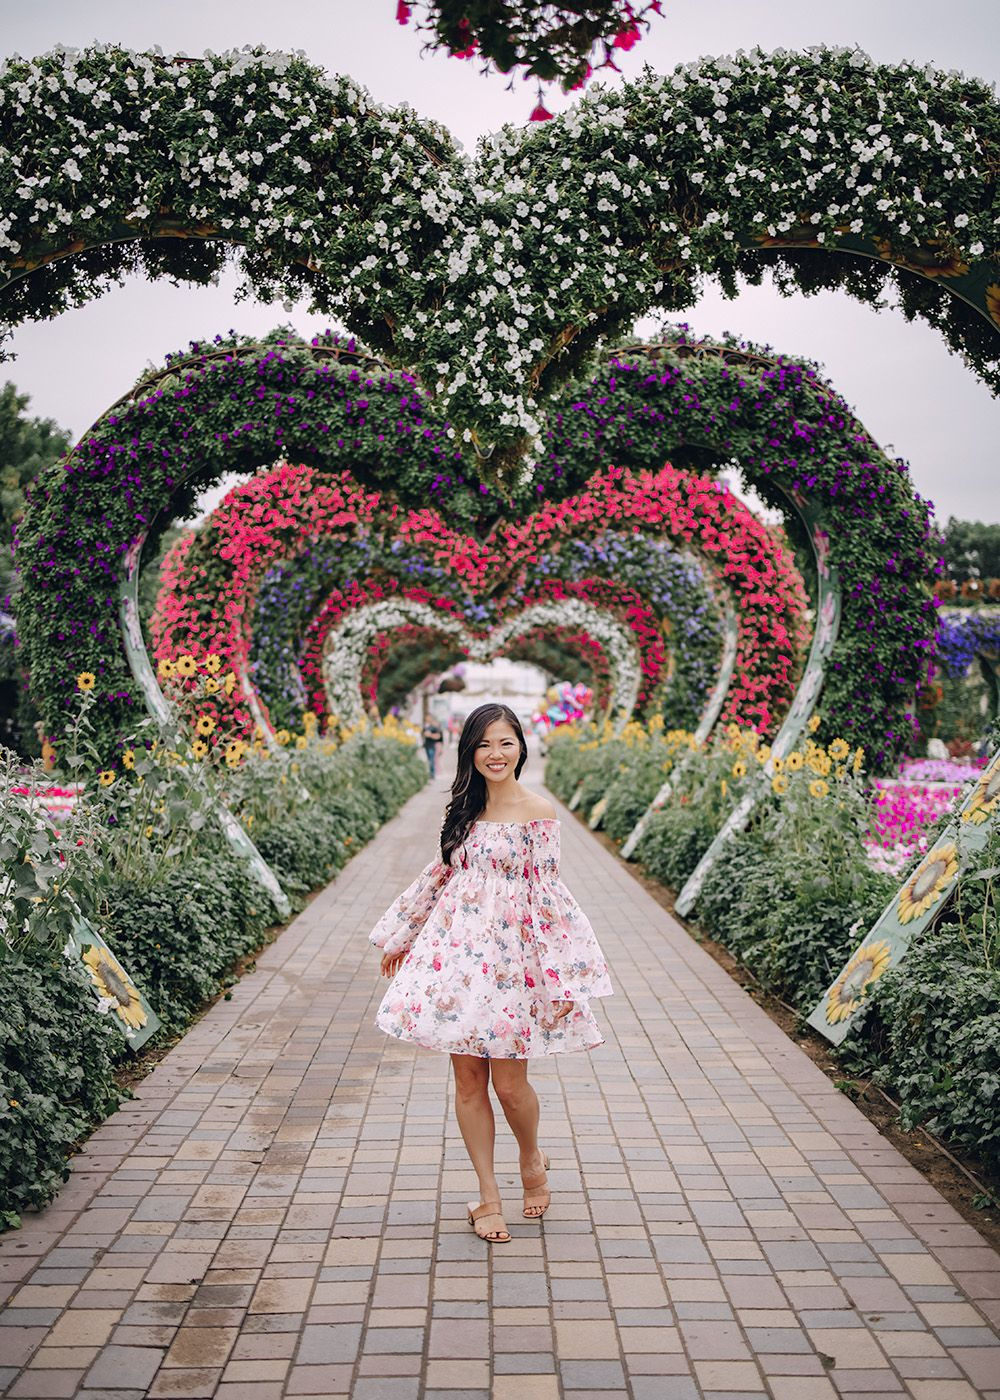 The Most Instagrammable Place in Dubai Floral Hearts at